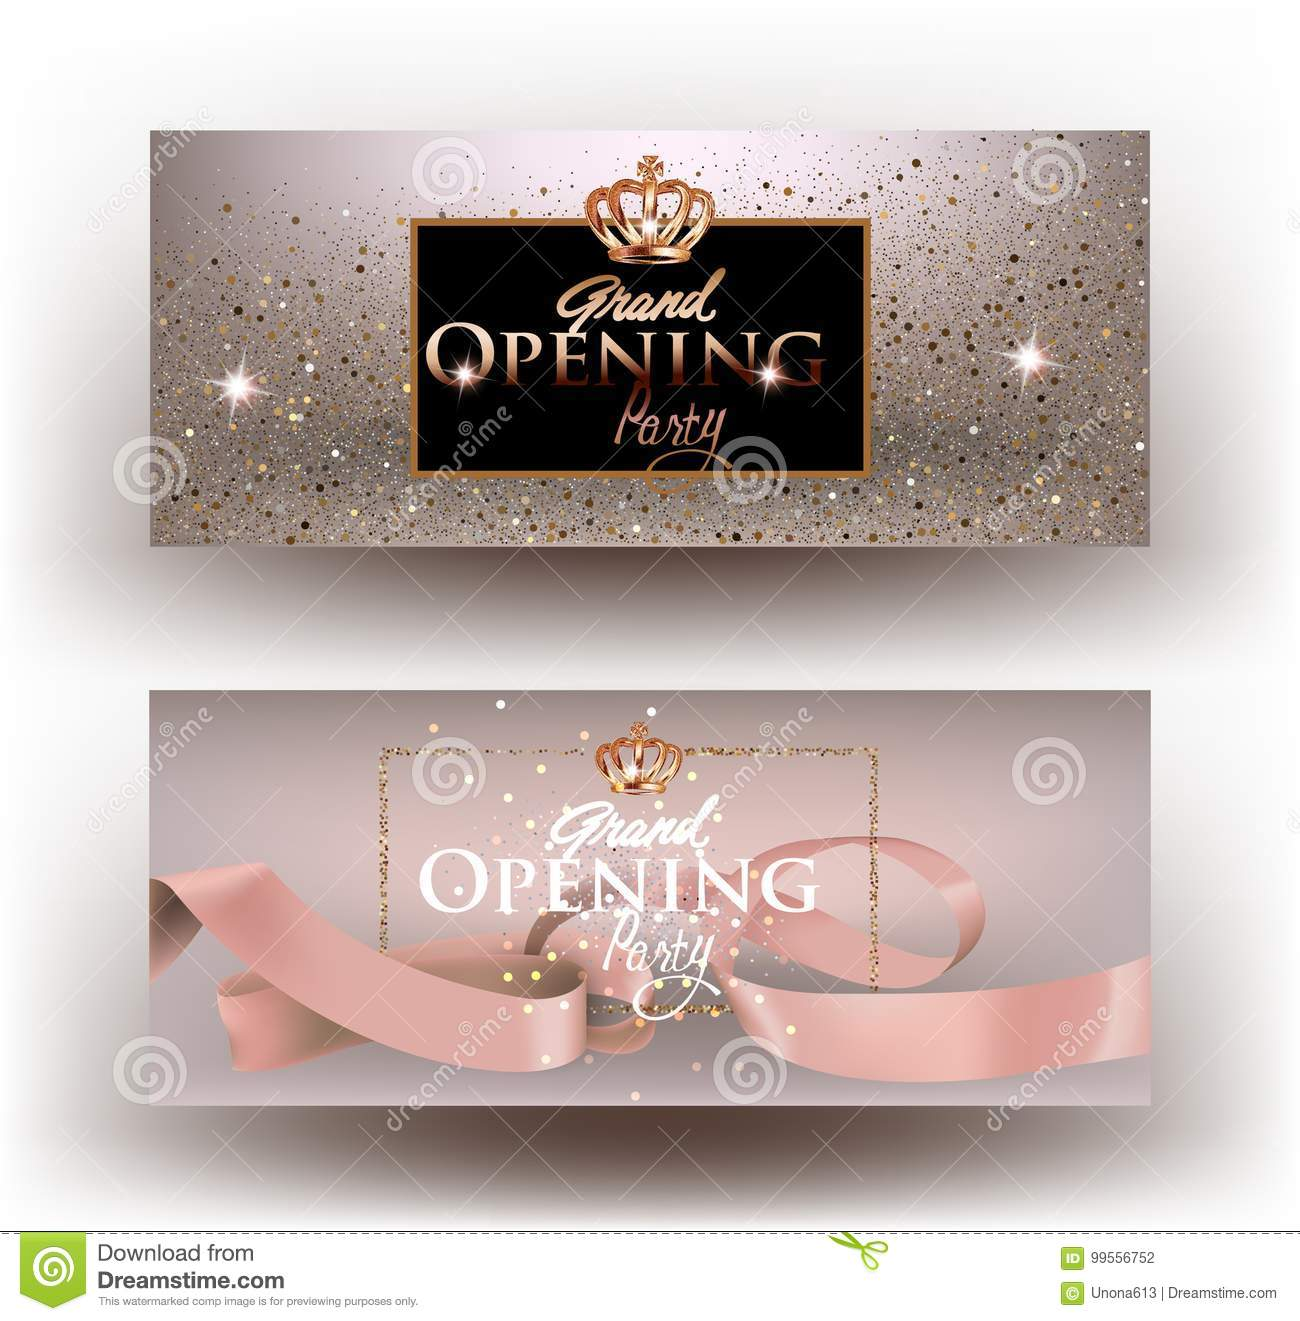 Beige grand opening party invitation cards with sparkling dust, frame and ribbon.